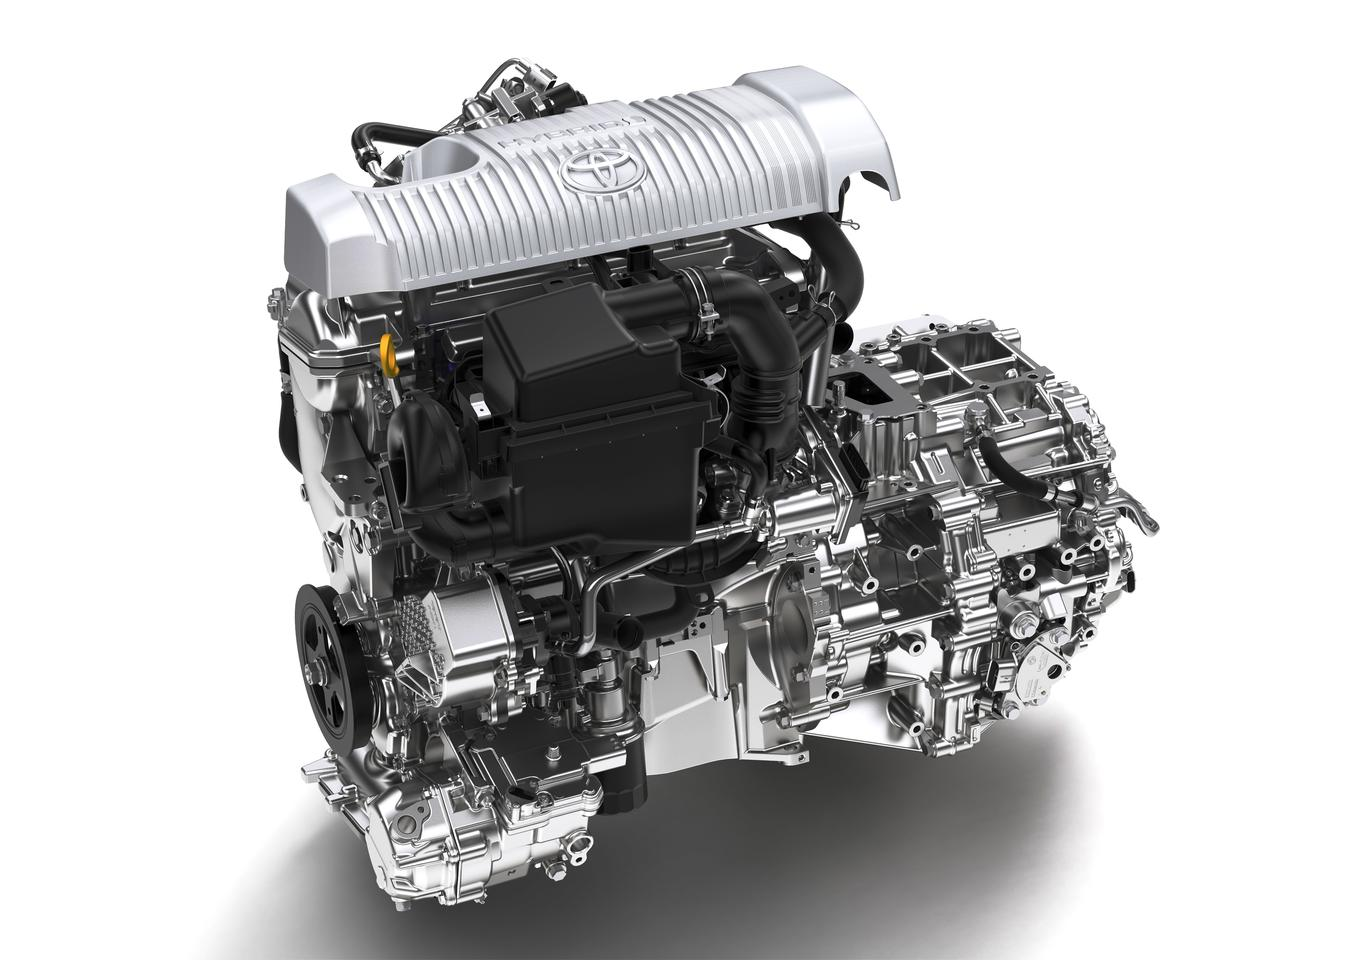 The new bonsai Toyota Hybrid Synergy Drive system for the Yaris